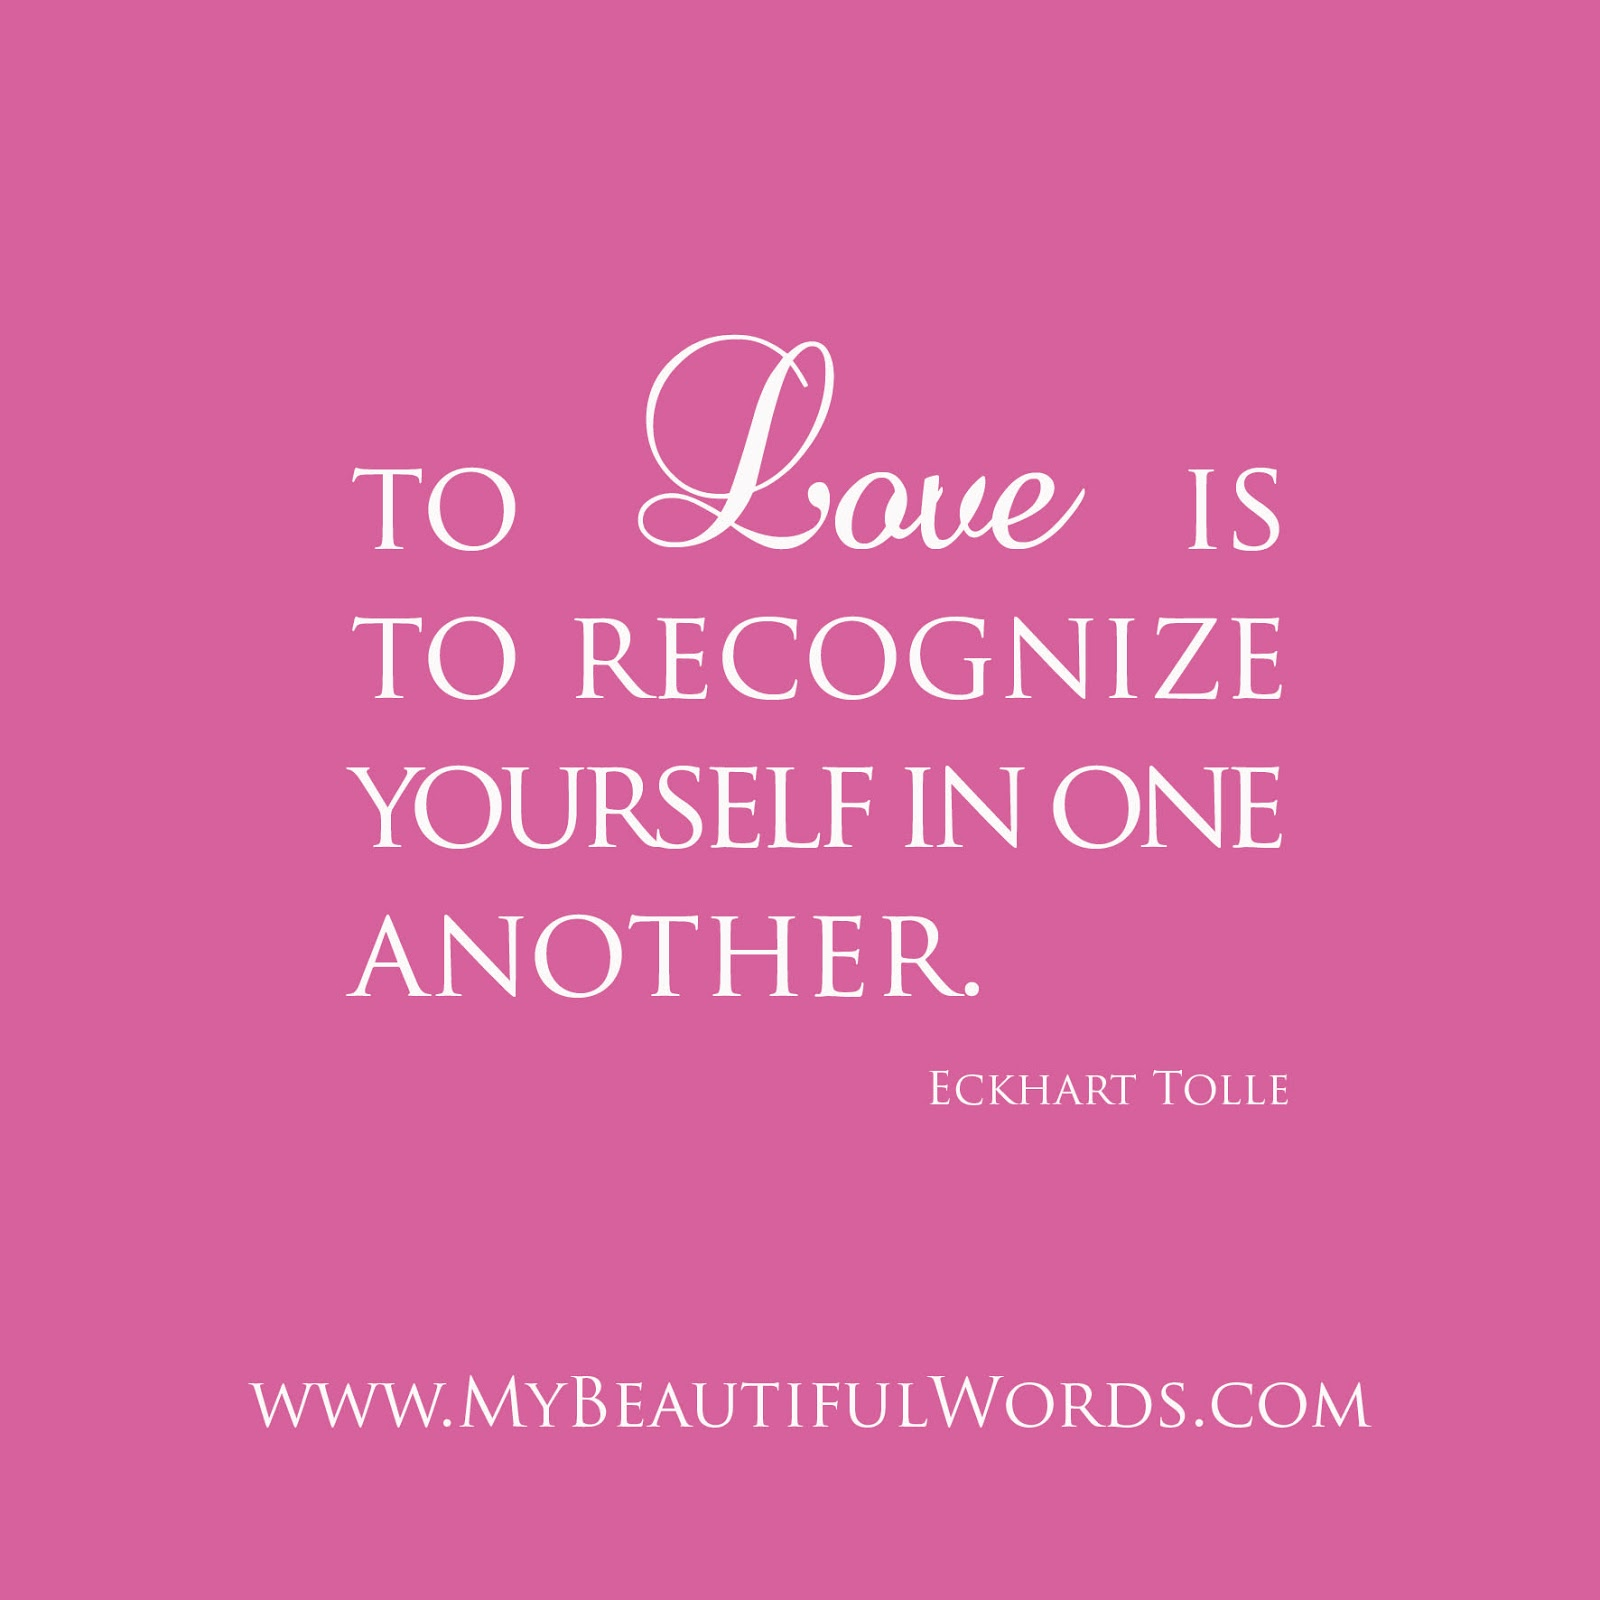 Love One Another Quotes Sayings: Eckhart Tolle Quotes. QuotesGram